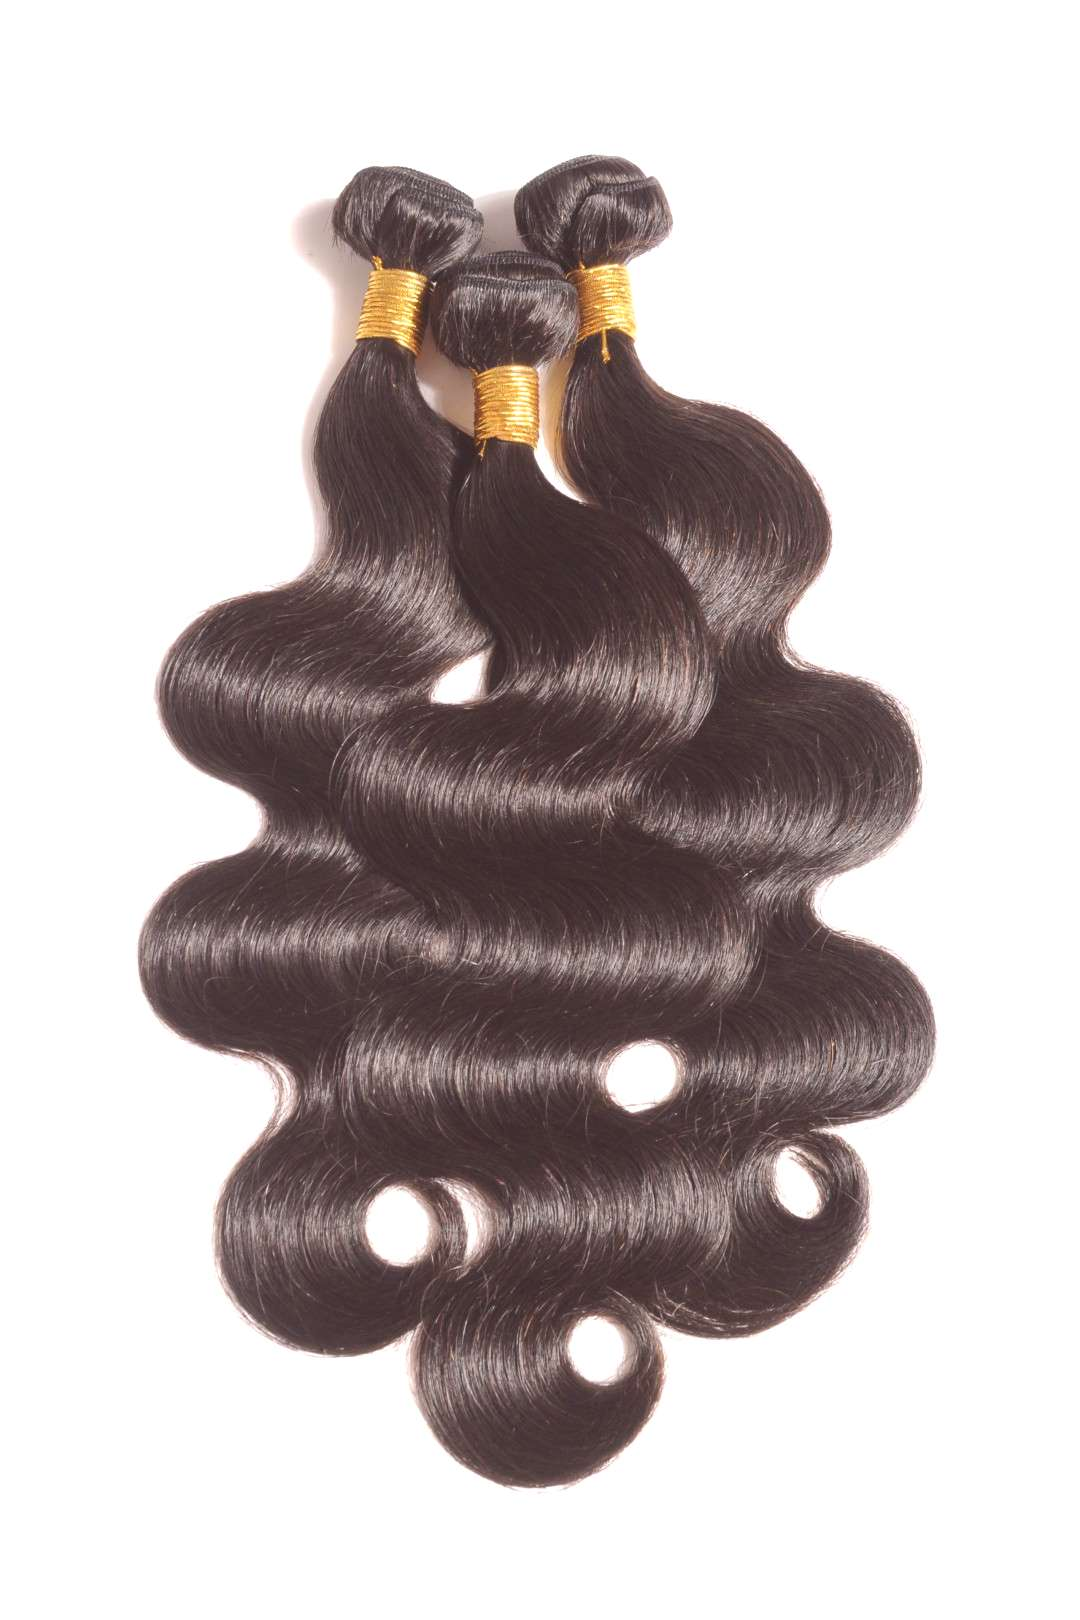 body wave Our hair will last from 9 months up to two years with proper upkeep, can be colored to a